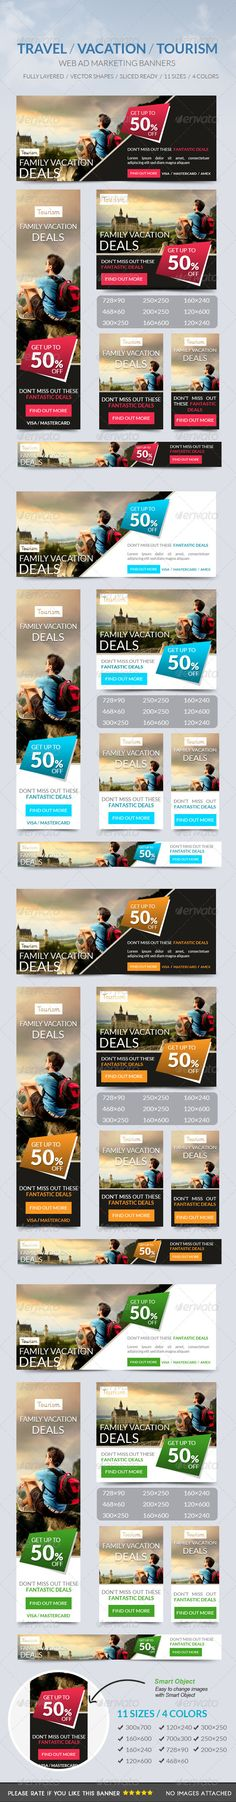 Travel Vacation Tourism Banner Template PSD | Buy and Download: http://graphicriver.net/item/travel-vacation-tourism-banner/7447186?WT.ac=category_thumb&WT.z_author=msrashdi&ref=ksioks